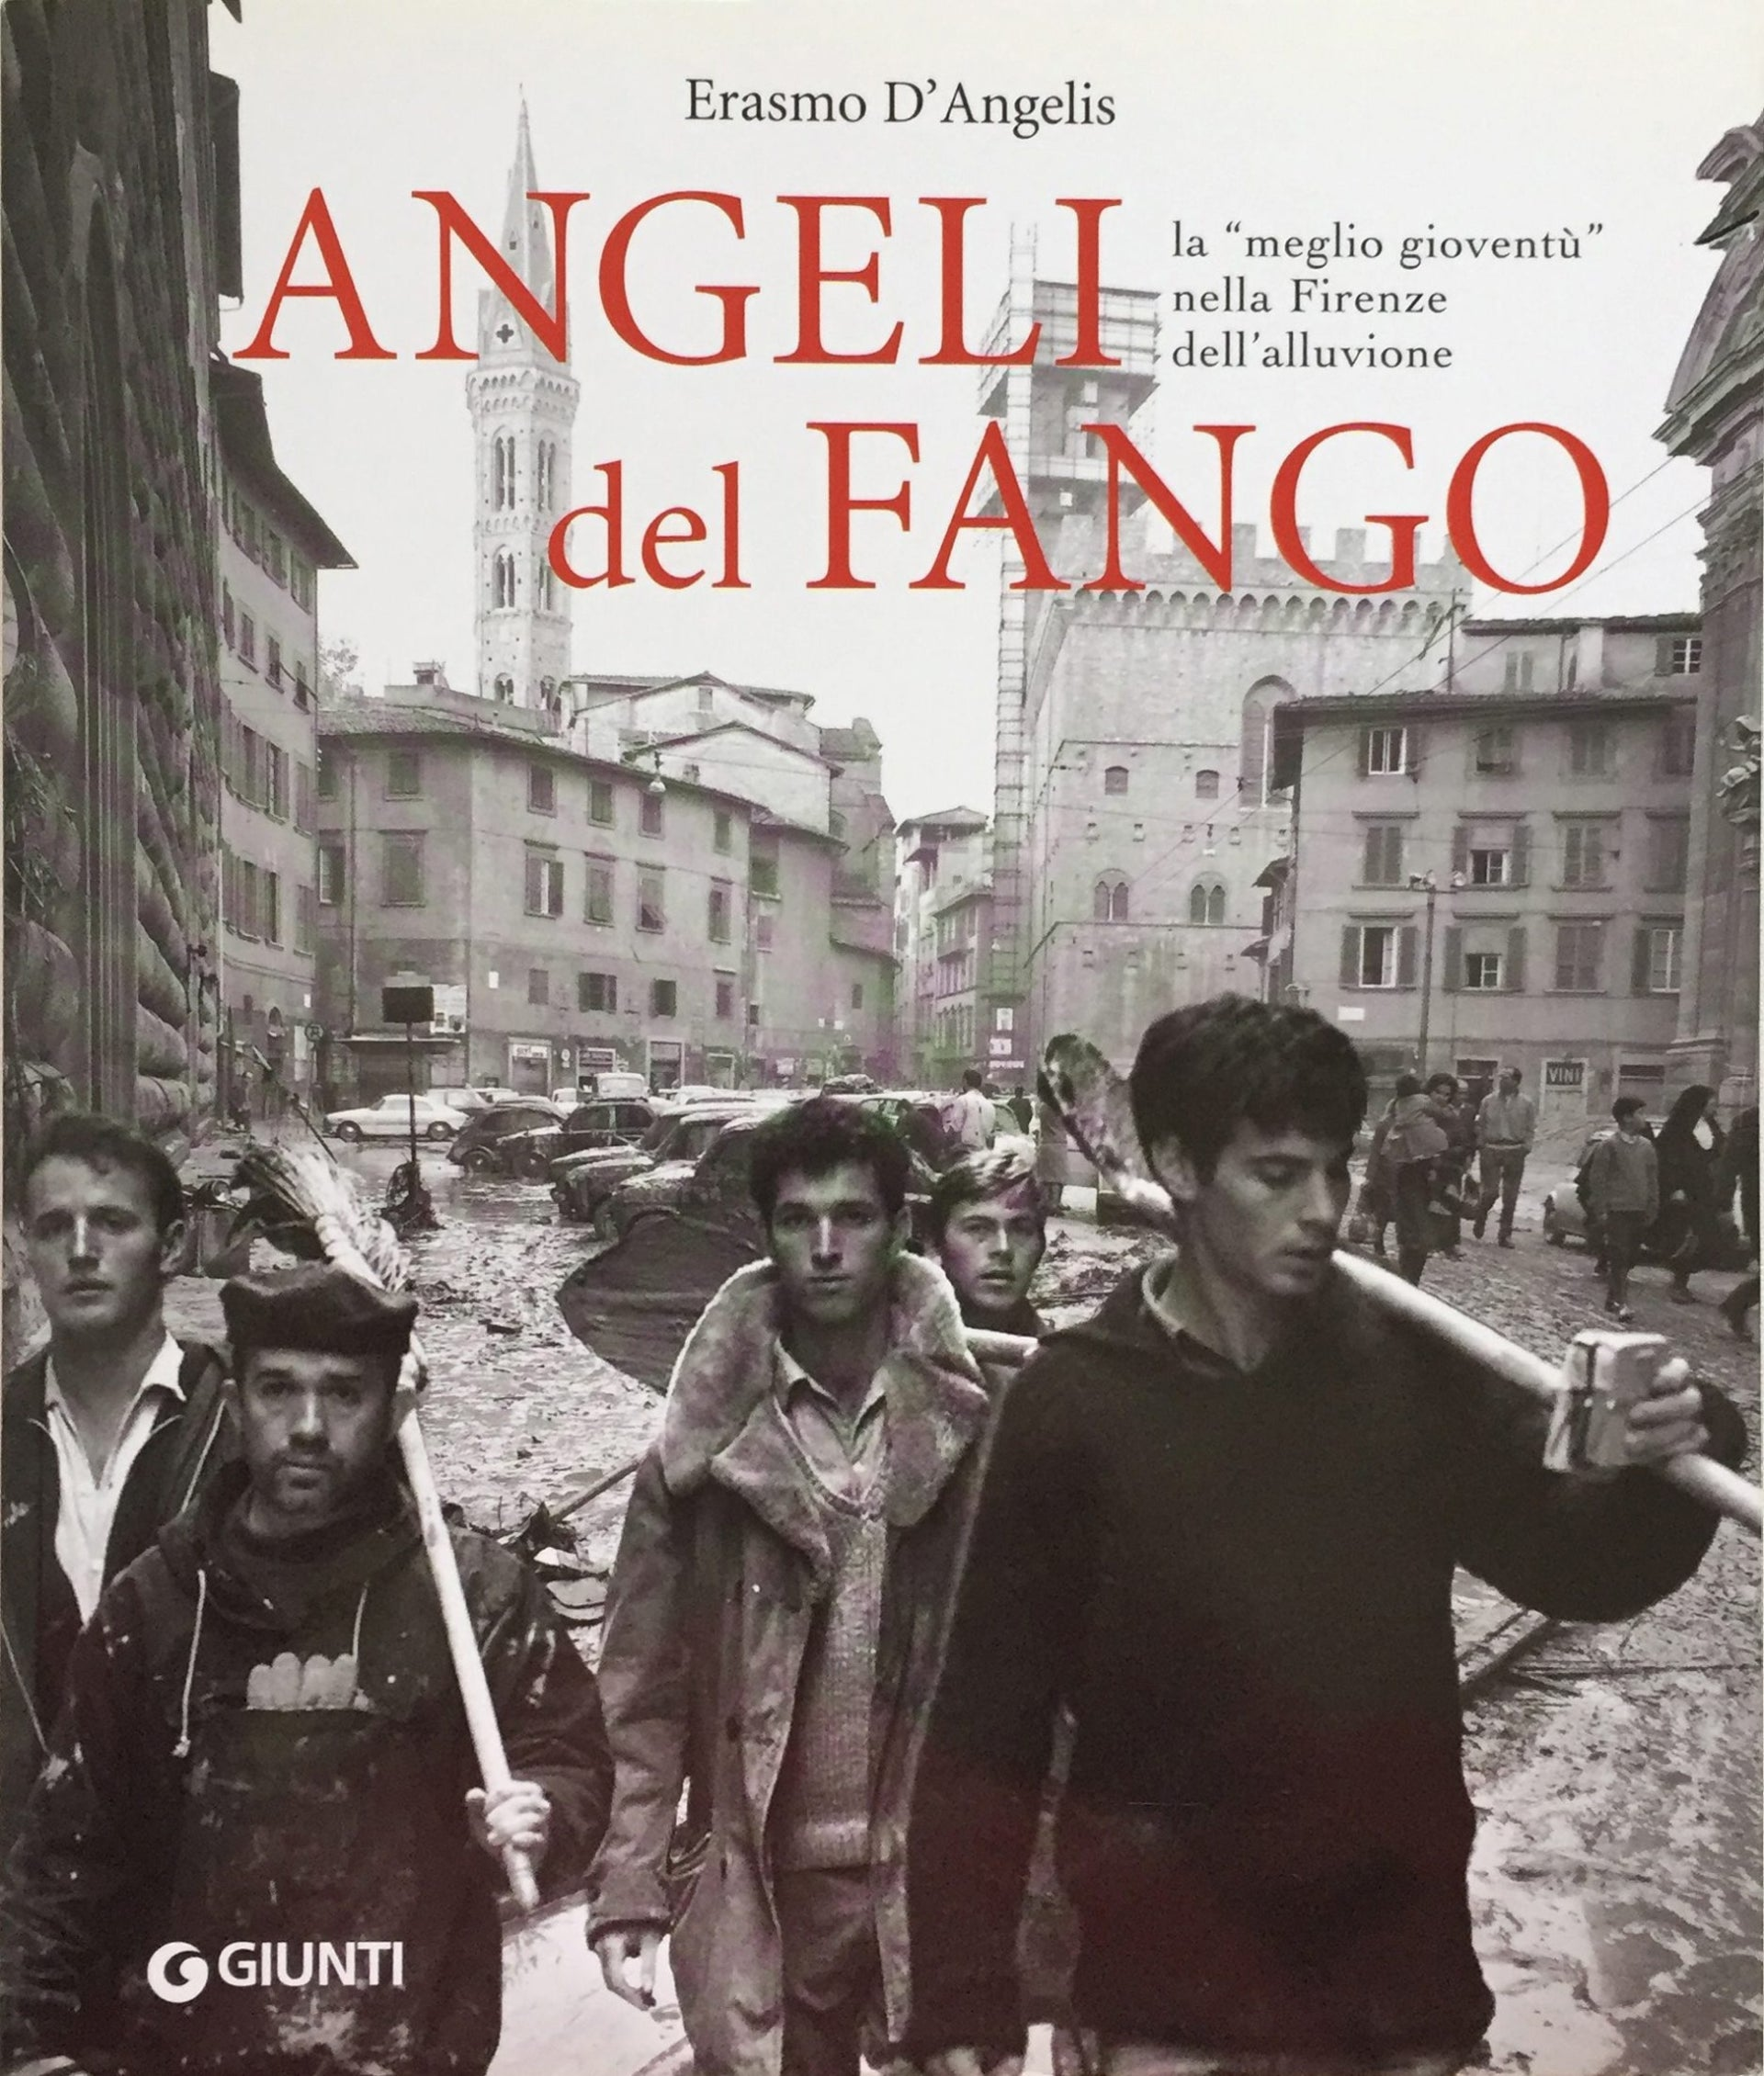 The team was featured on the cover of 'Angeli del Fango', published by Giunti. From right to left: Buki Zuker, Danny Tal, Avishay Eyal, Joram Rozov and Gali Hoss.